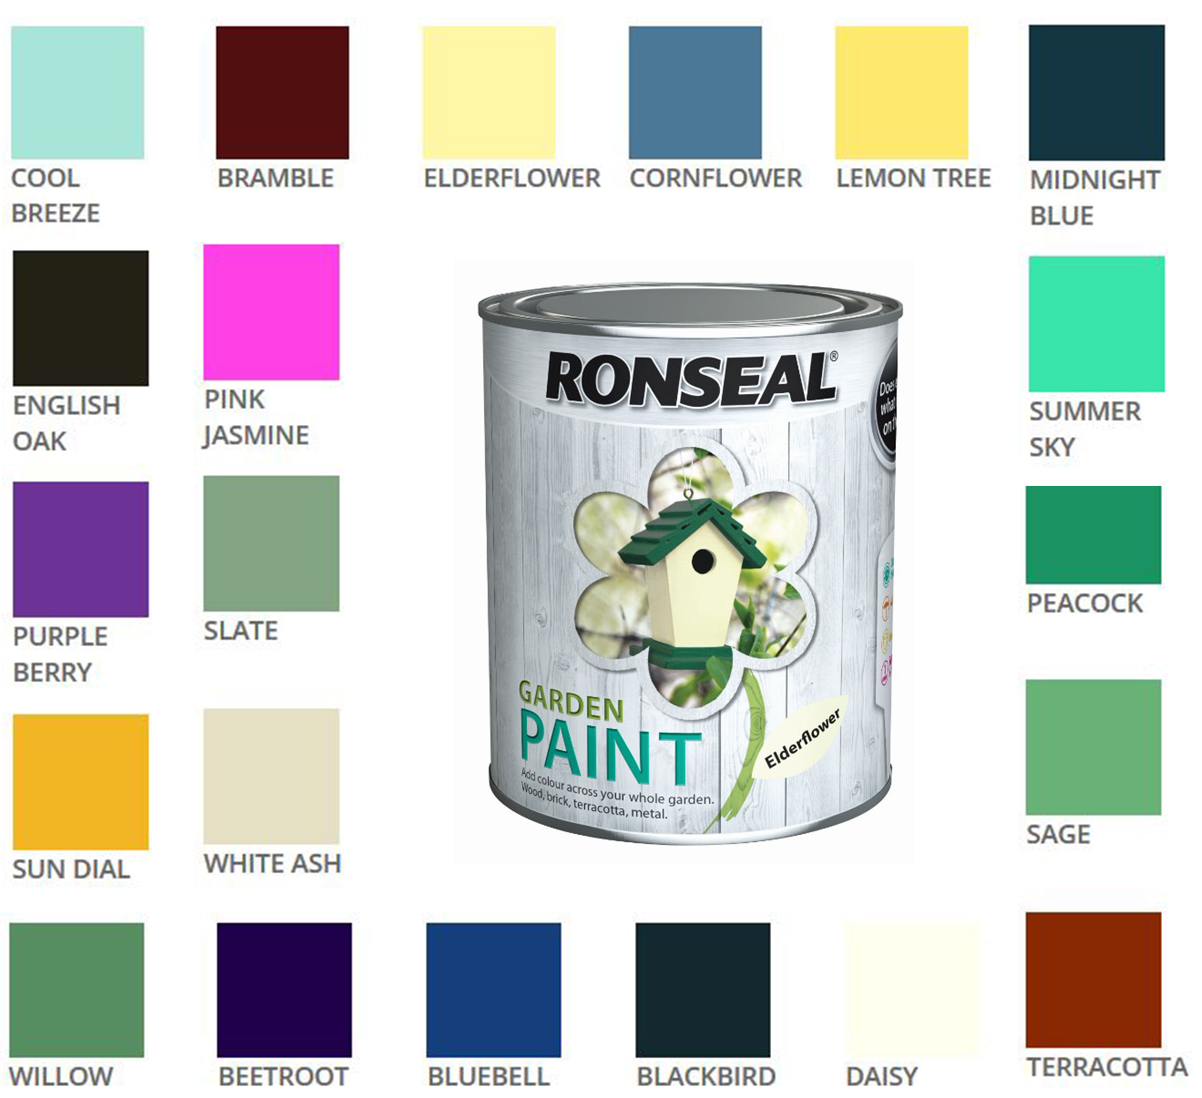 Inspiring Ronseal Garden Paint Colourful Shades Bright Fast Quick Drying  With Gorgeous Ronseal Garden Paint Colourful Shades Bright Fast Quick Drying Furniture  Paint With Comely Spice Garden Resorts Munnar Also Princes Street Garden In Addition Kansas State University Gardens And Garden Sheds Bristol As Well As Wooden Garden Office Additionally All Seasons Garden Services From Ebaycouk With   Gorgeous Ronseal Garden Paint Colourful Shades Bright Fast Quick Drying  With Comely Ronseal Garden Paint Colourful Shades Bright Fast Quick Drying Furniture  Paint And Inspiring Spice Garden Resorts Munnar Also Princes Street Garden In Addition Kansas State University Gardens From Ebaycouk